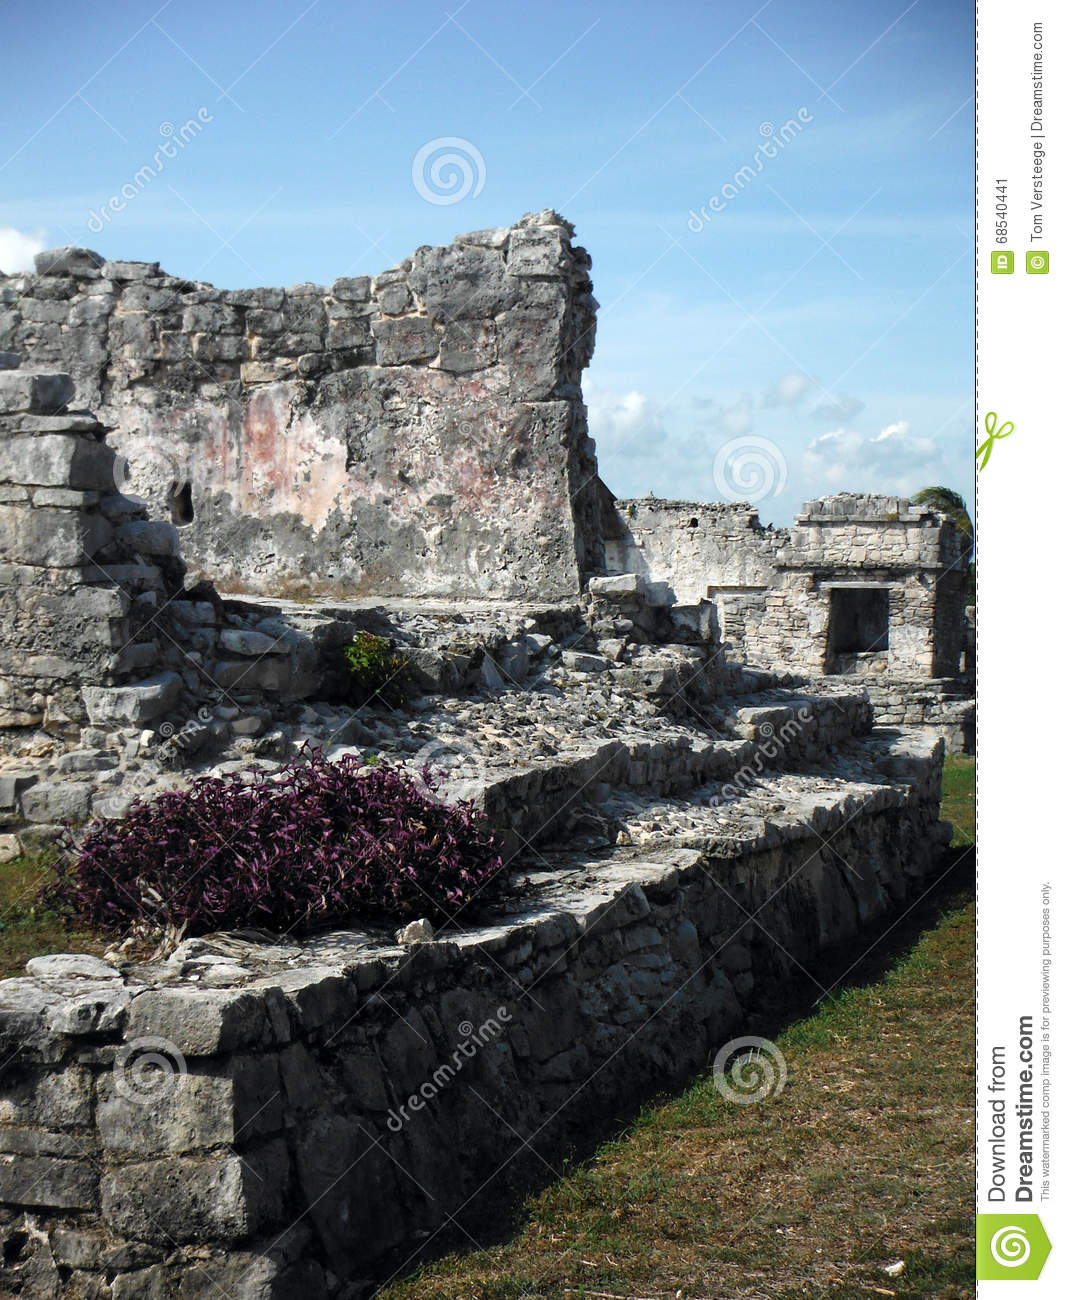 Mayan Constructs in the Archeological Site of Tulum